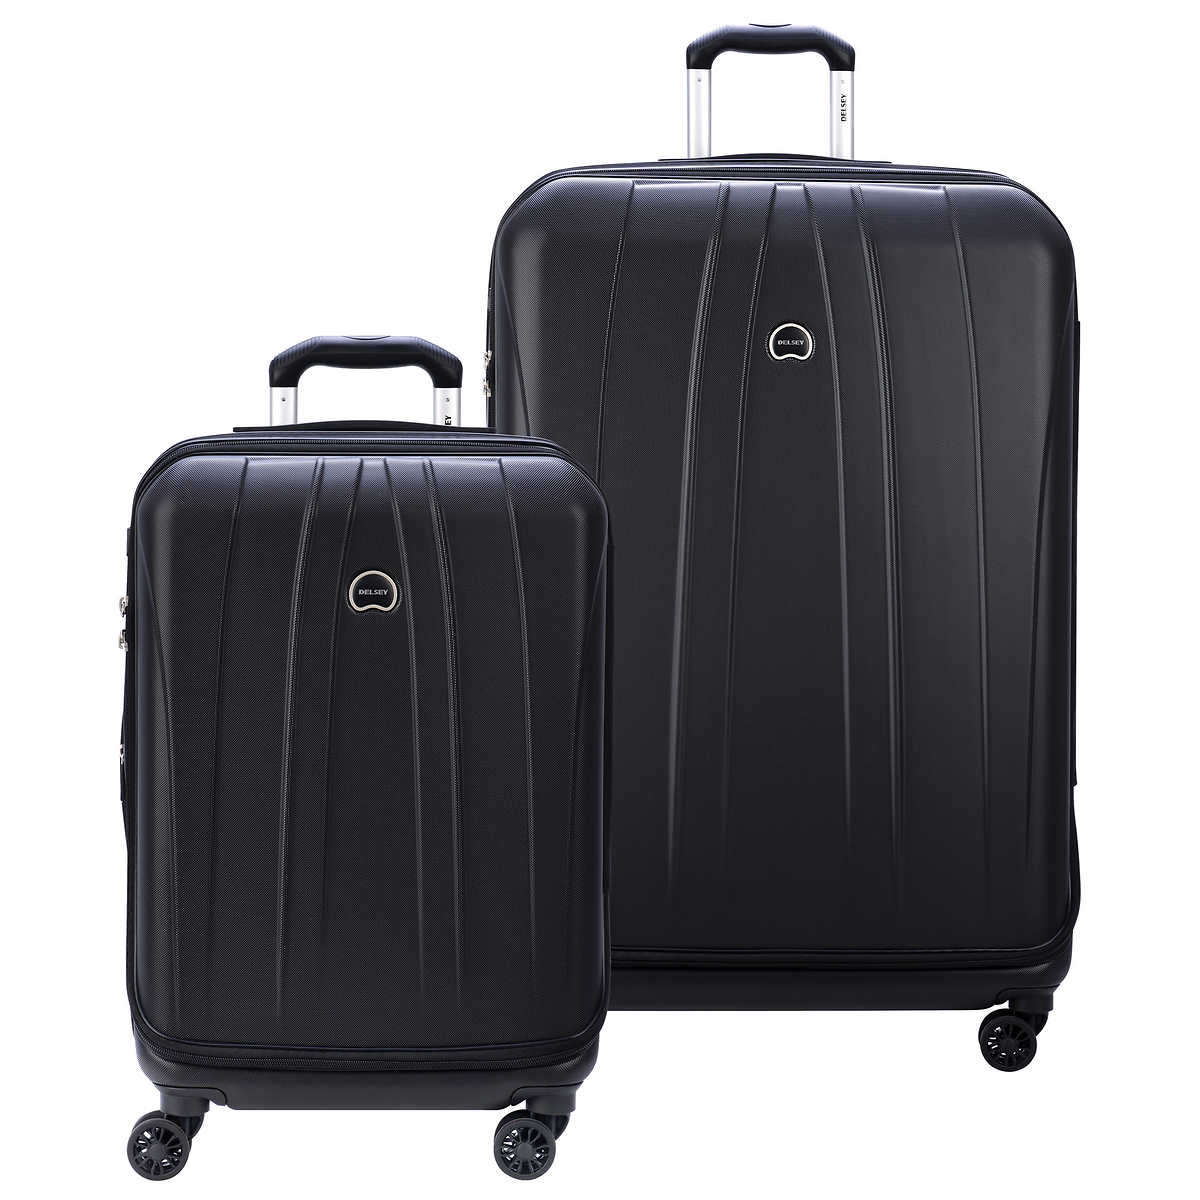 Luggage | Costco